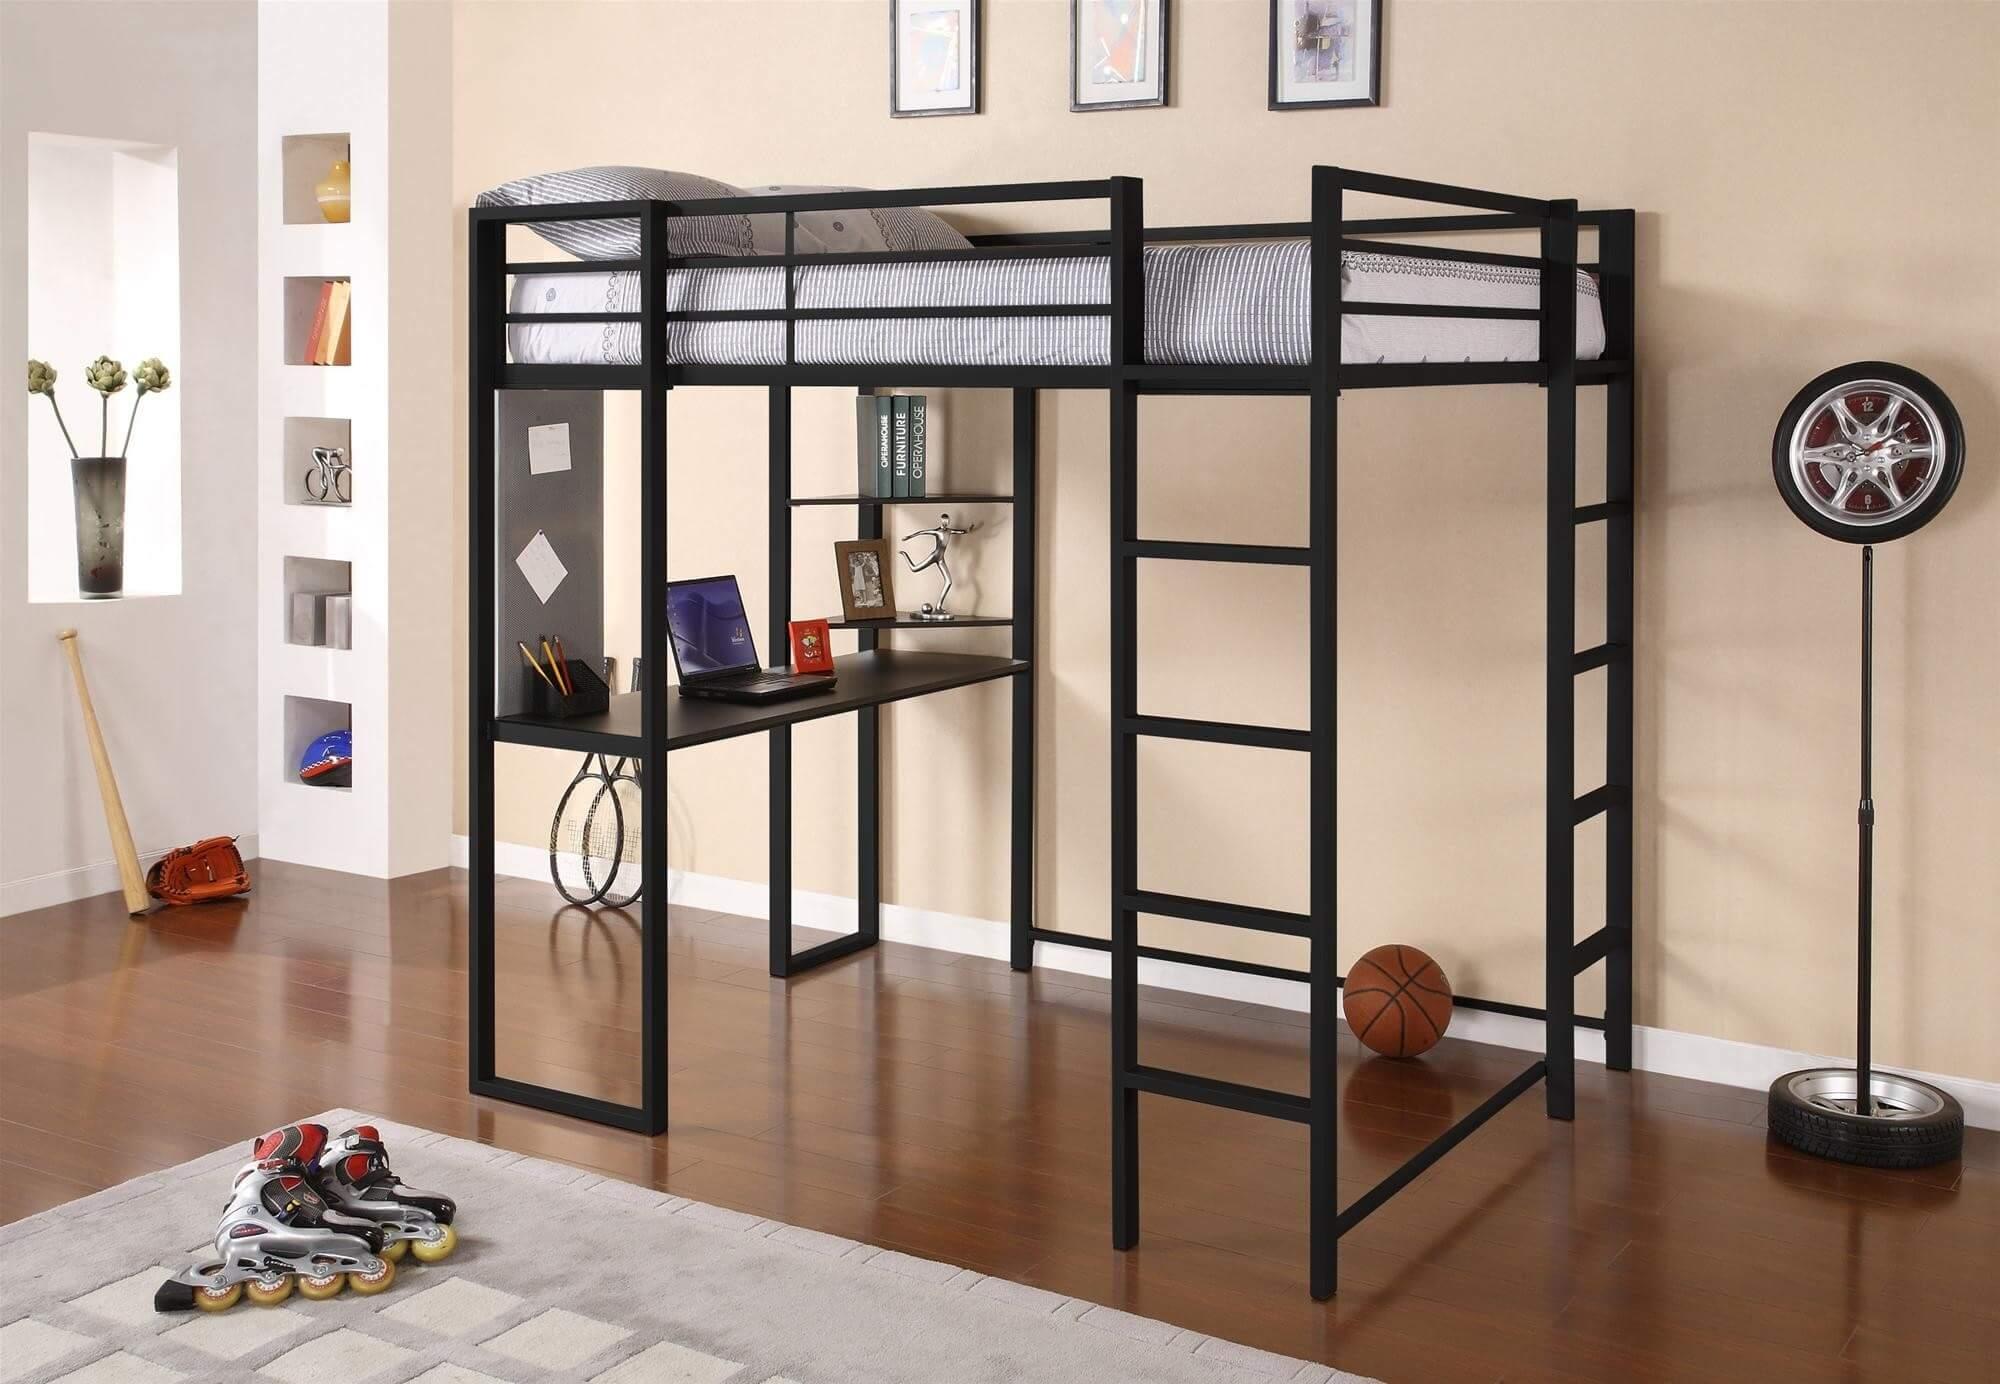 Adobe full metal loft bed over workstation desk black